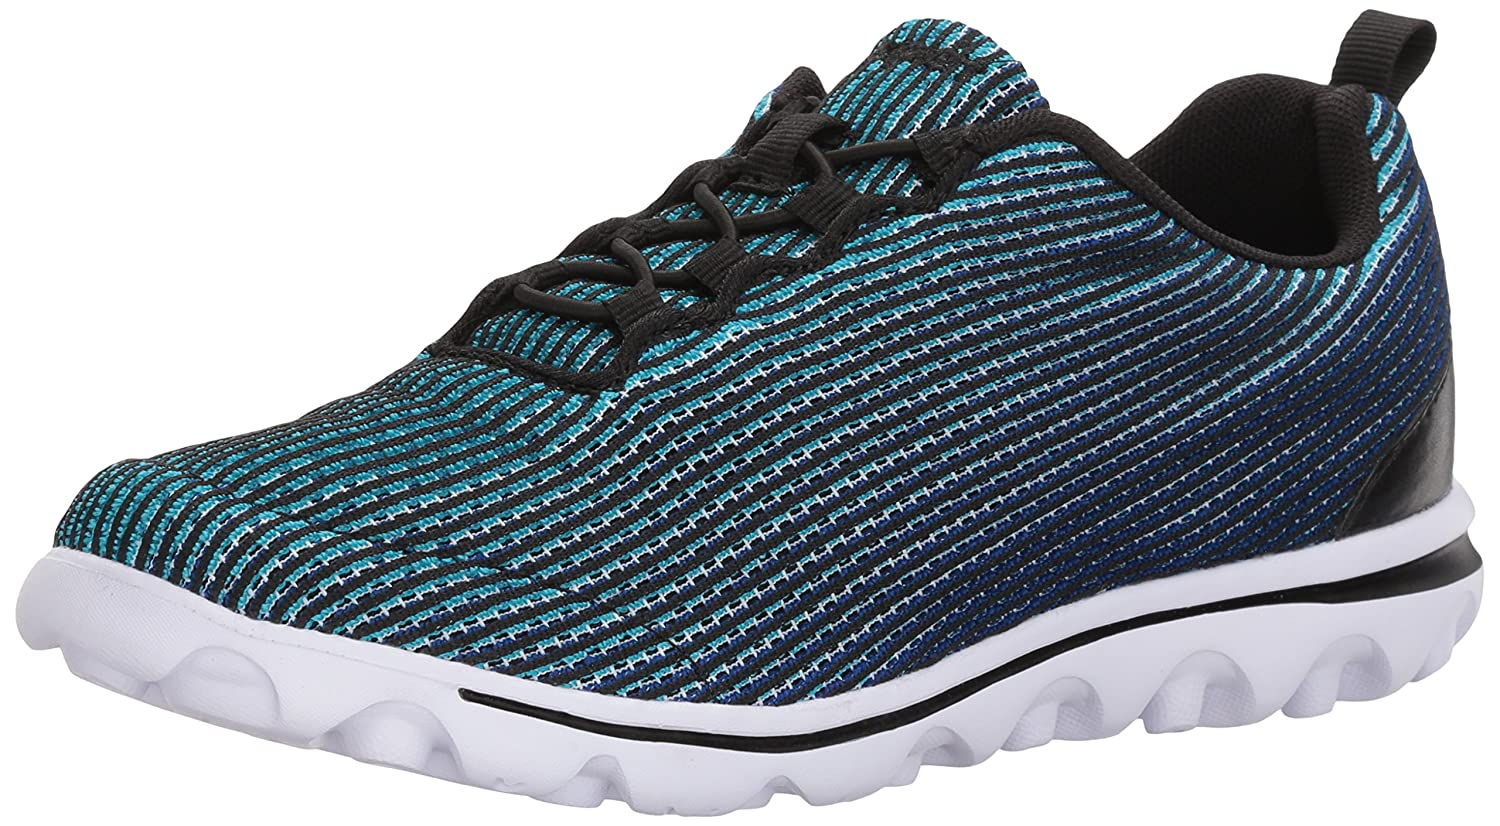 Propét Women's TravelActiv Xpress Sneaker B072M83HRQ 8.5 4E US|Black/Blue